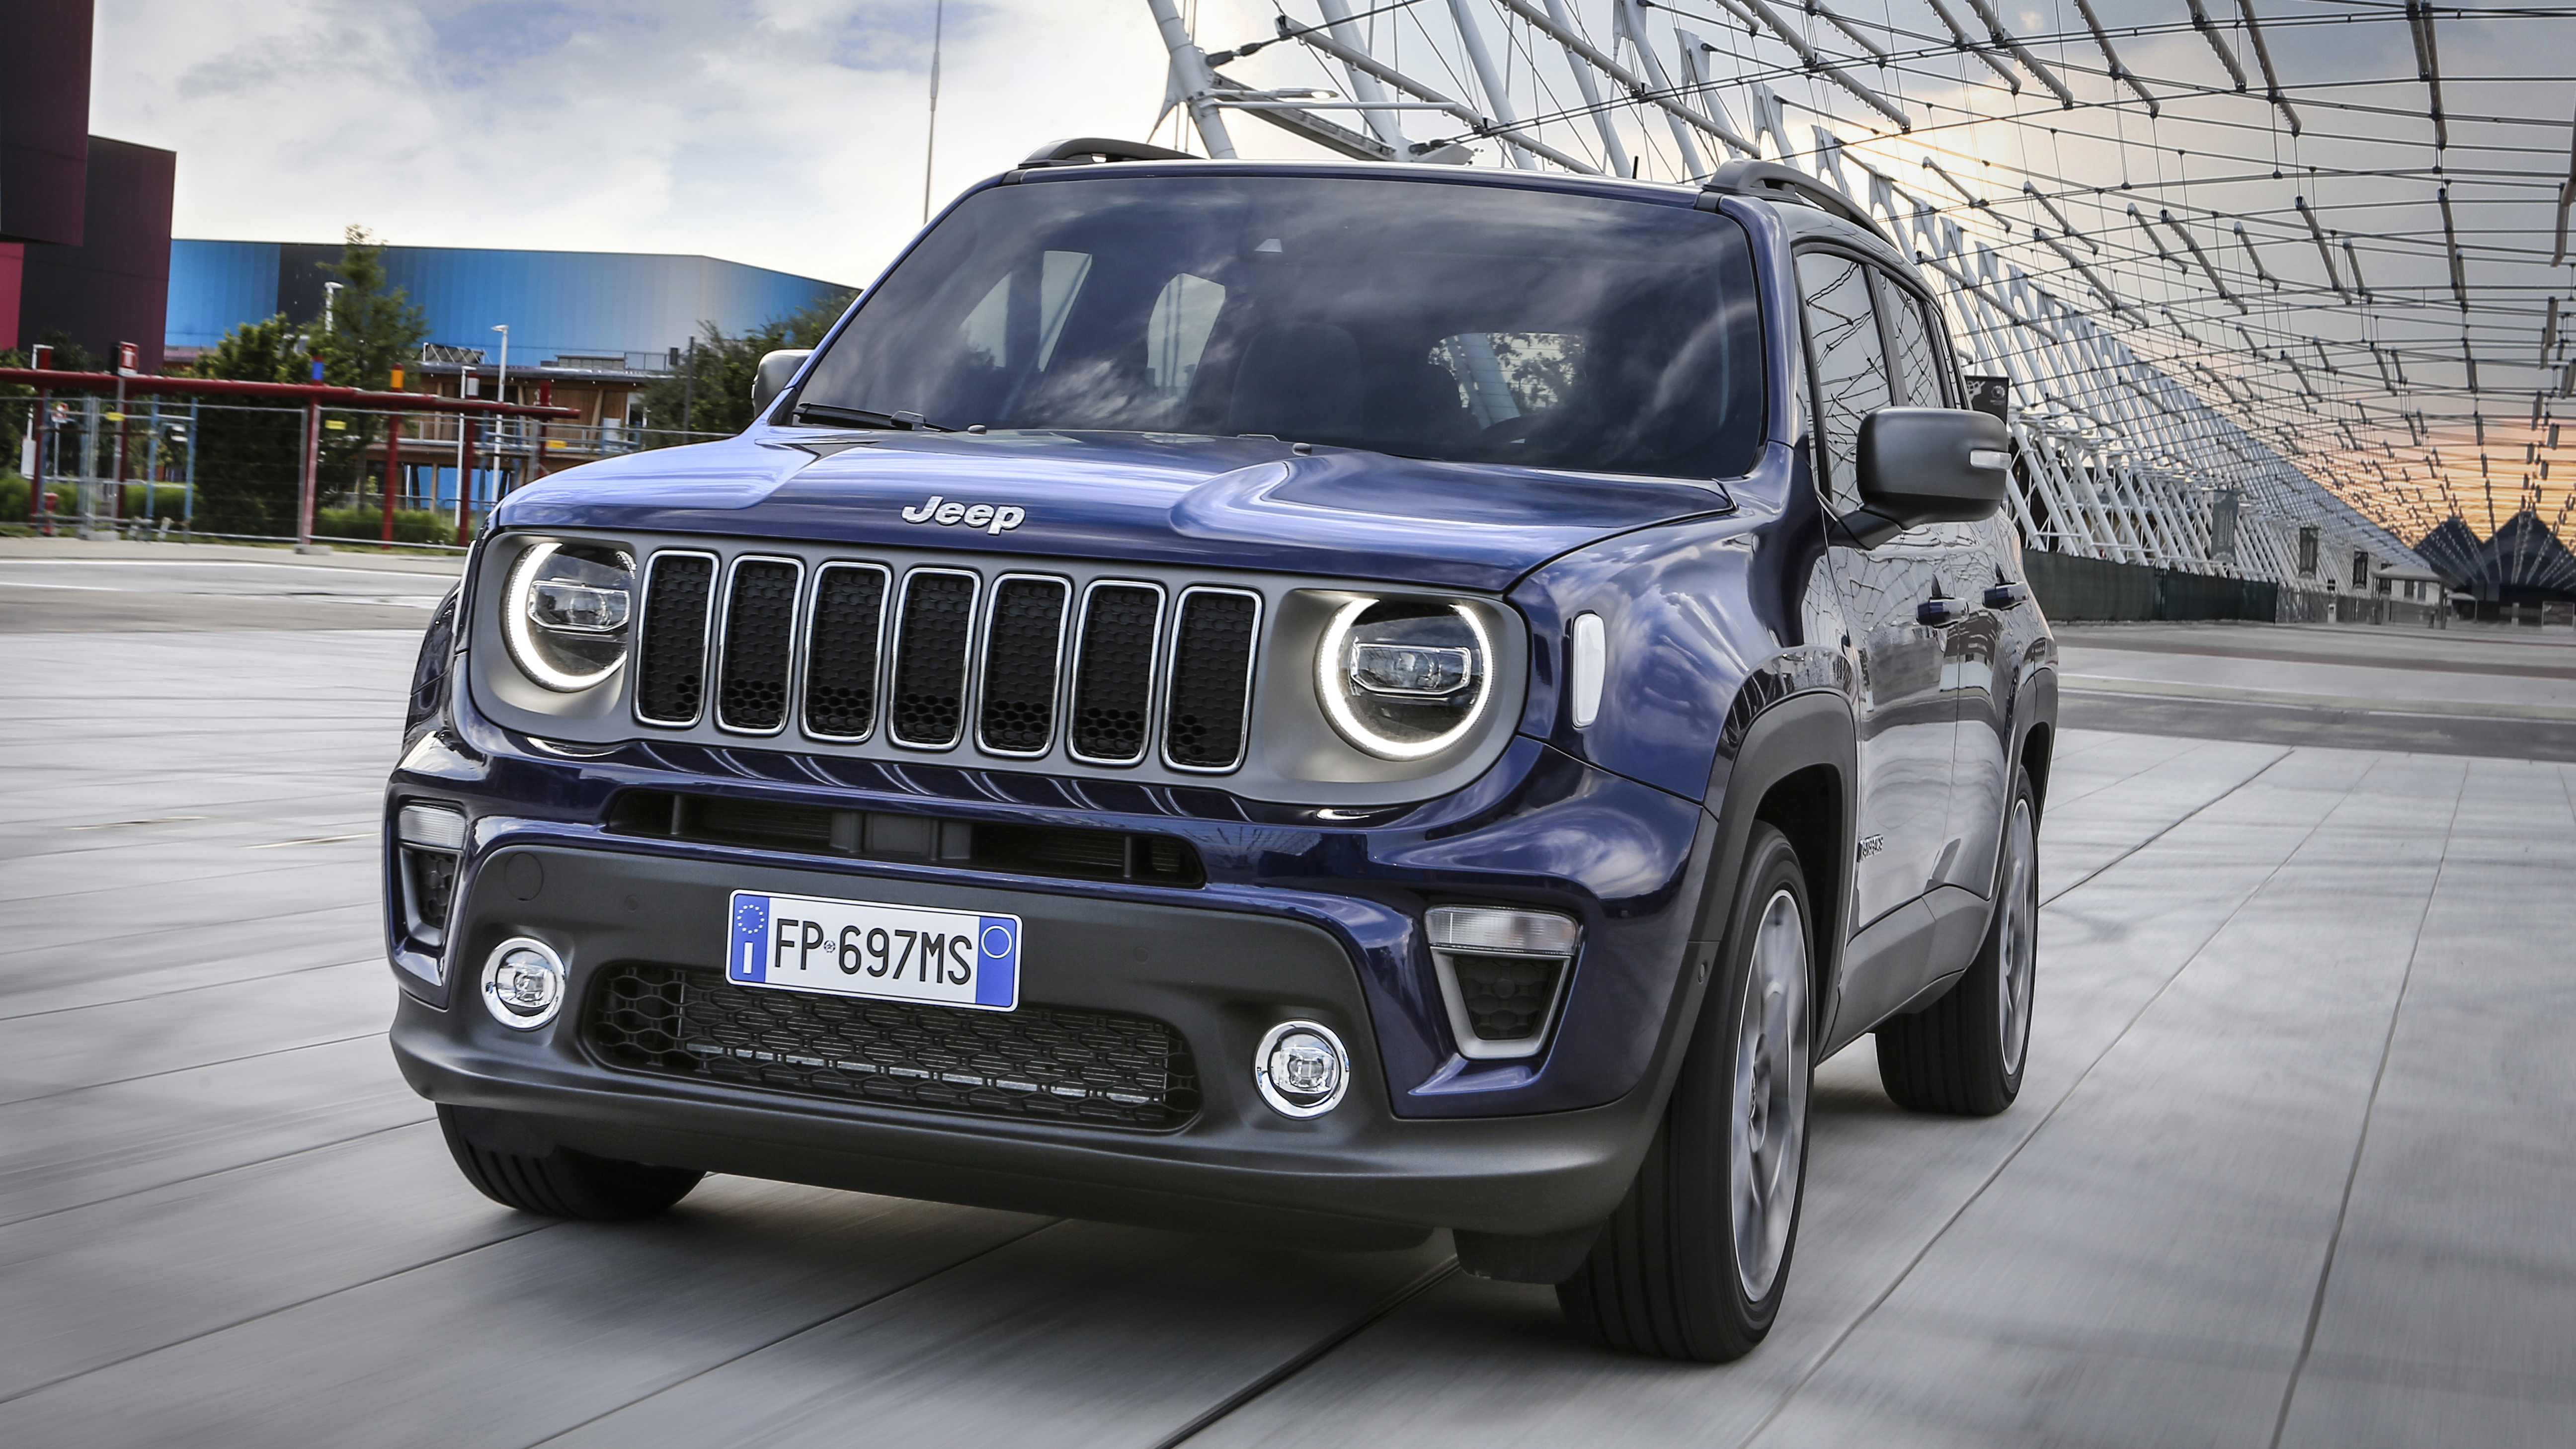 just in our can subcompact much renegade and we miniature week honda luxuries limited that level hr driving an other img jeep fiat as vs the attest system v trekking suvs entry enjoyed